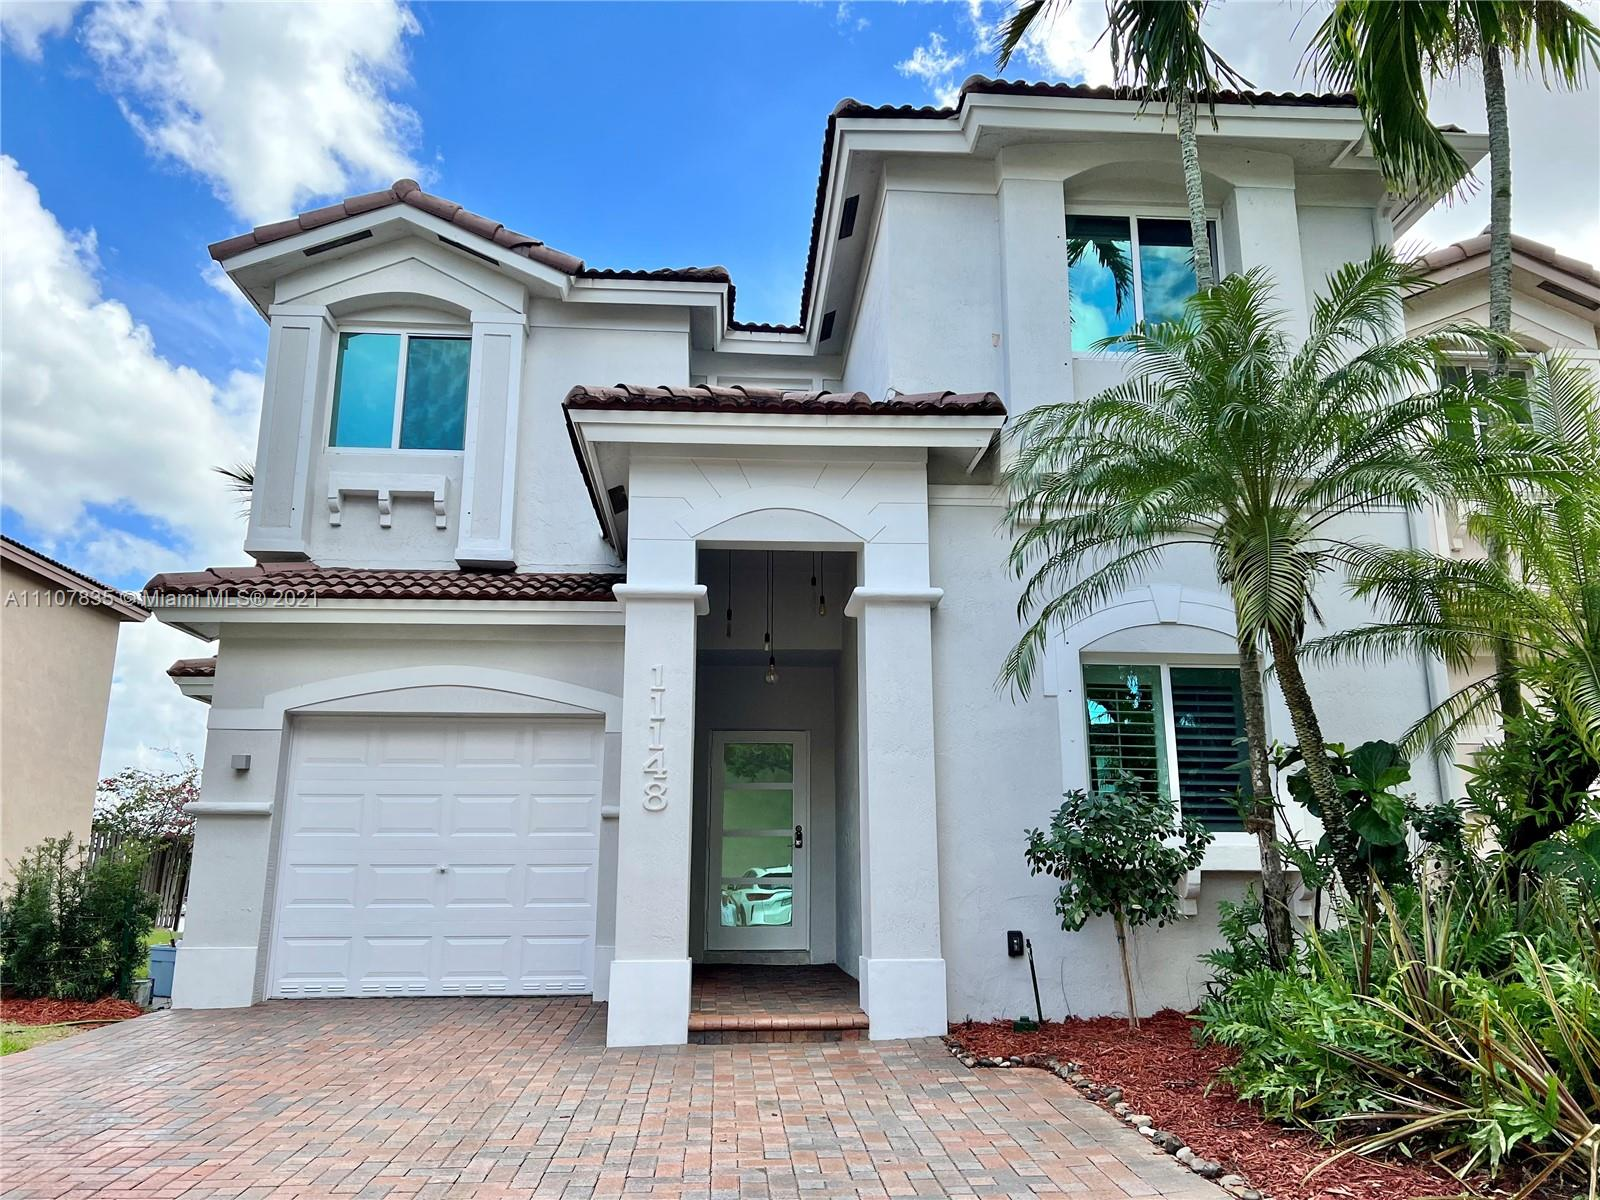 Single Family Home,For Rent,11148 NW 73rd St, Doral, Florida 33178,Brickell,realty,broker,condos near me